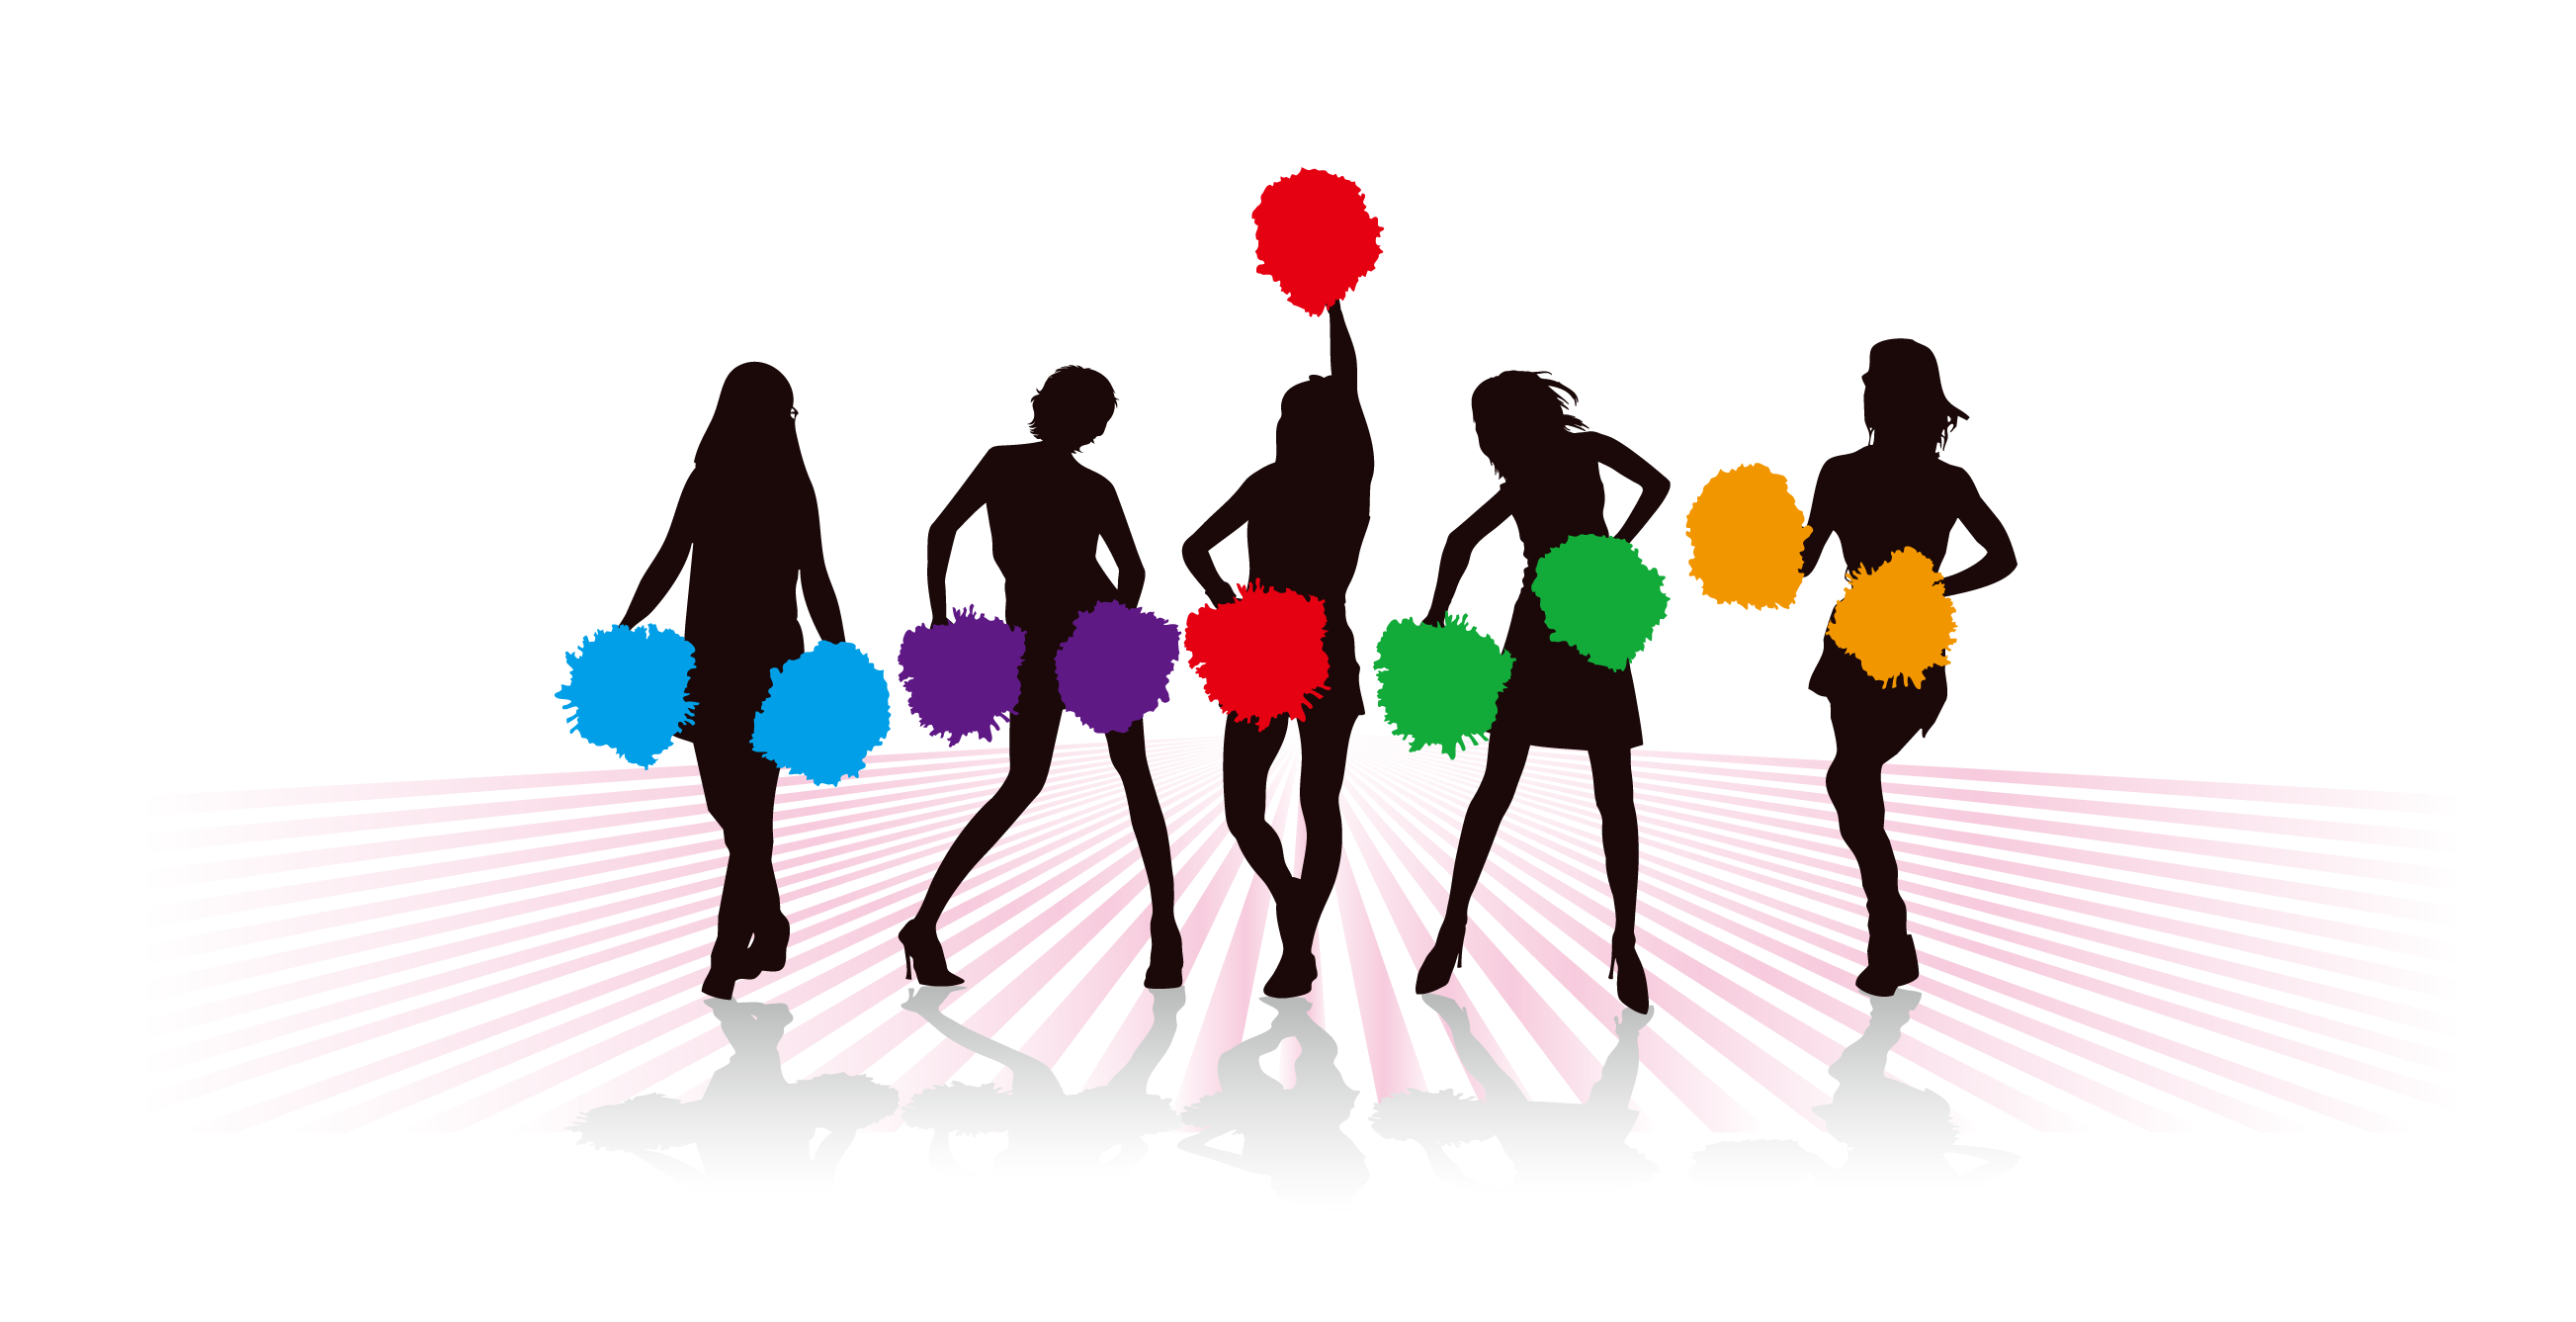 Football and pom pom clipart png free download Pom Pom Silhouette at GetDrawings.com | Free for personal use Pom ... png free download